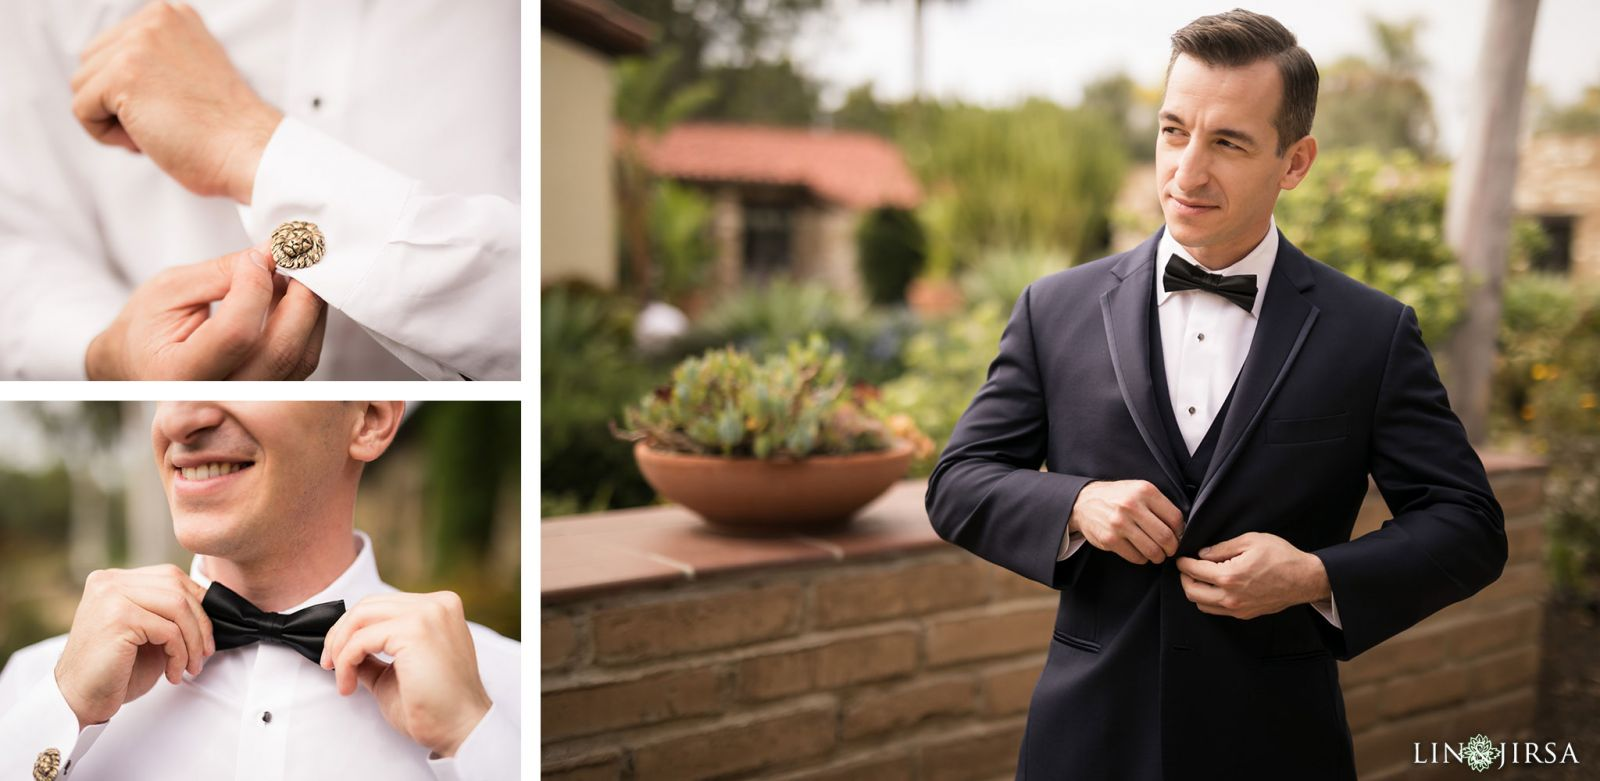 Groom attire and accessories during wedding   at the Estancia Hotel in La Jolla. Wedding Day Beauty by Vanity Belle in Orange County (Costa Mesa) and San Diego (La Jolla) thevanitybelle.com. Photography by Lin and Jirsa.